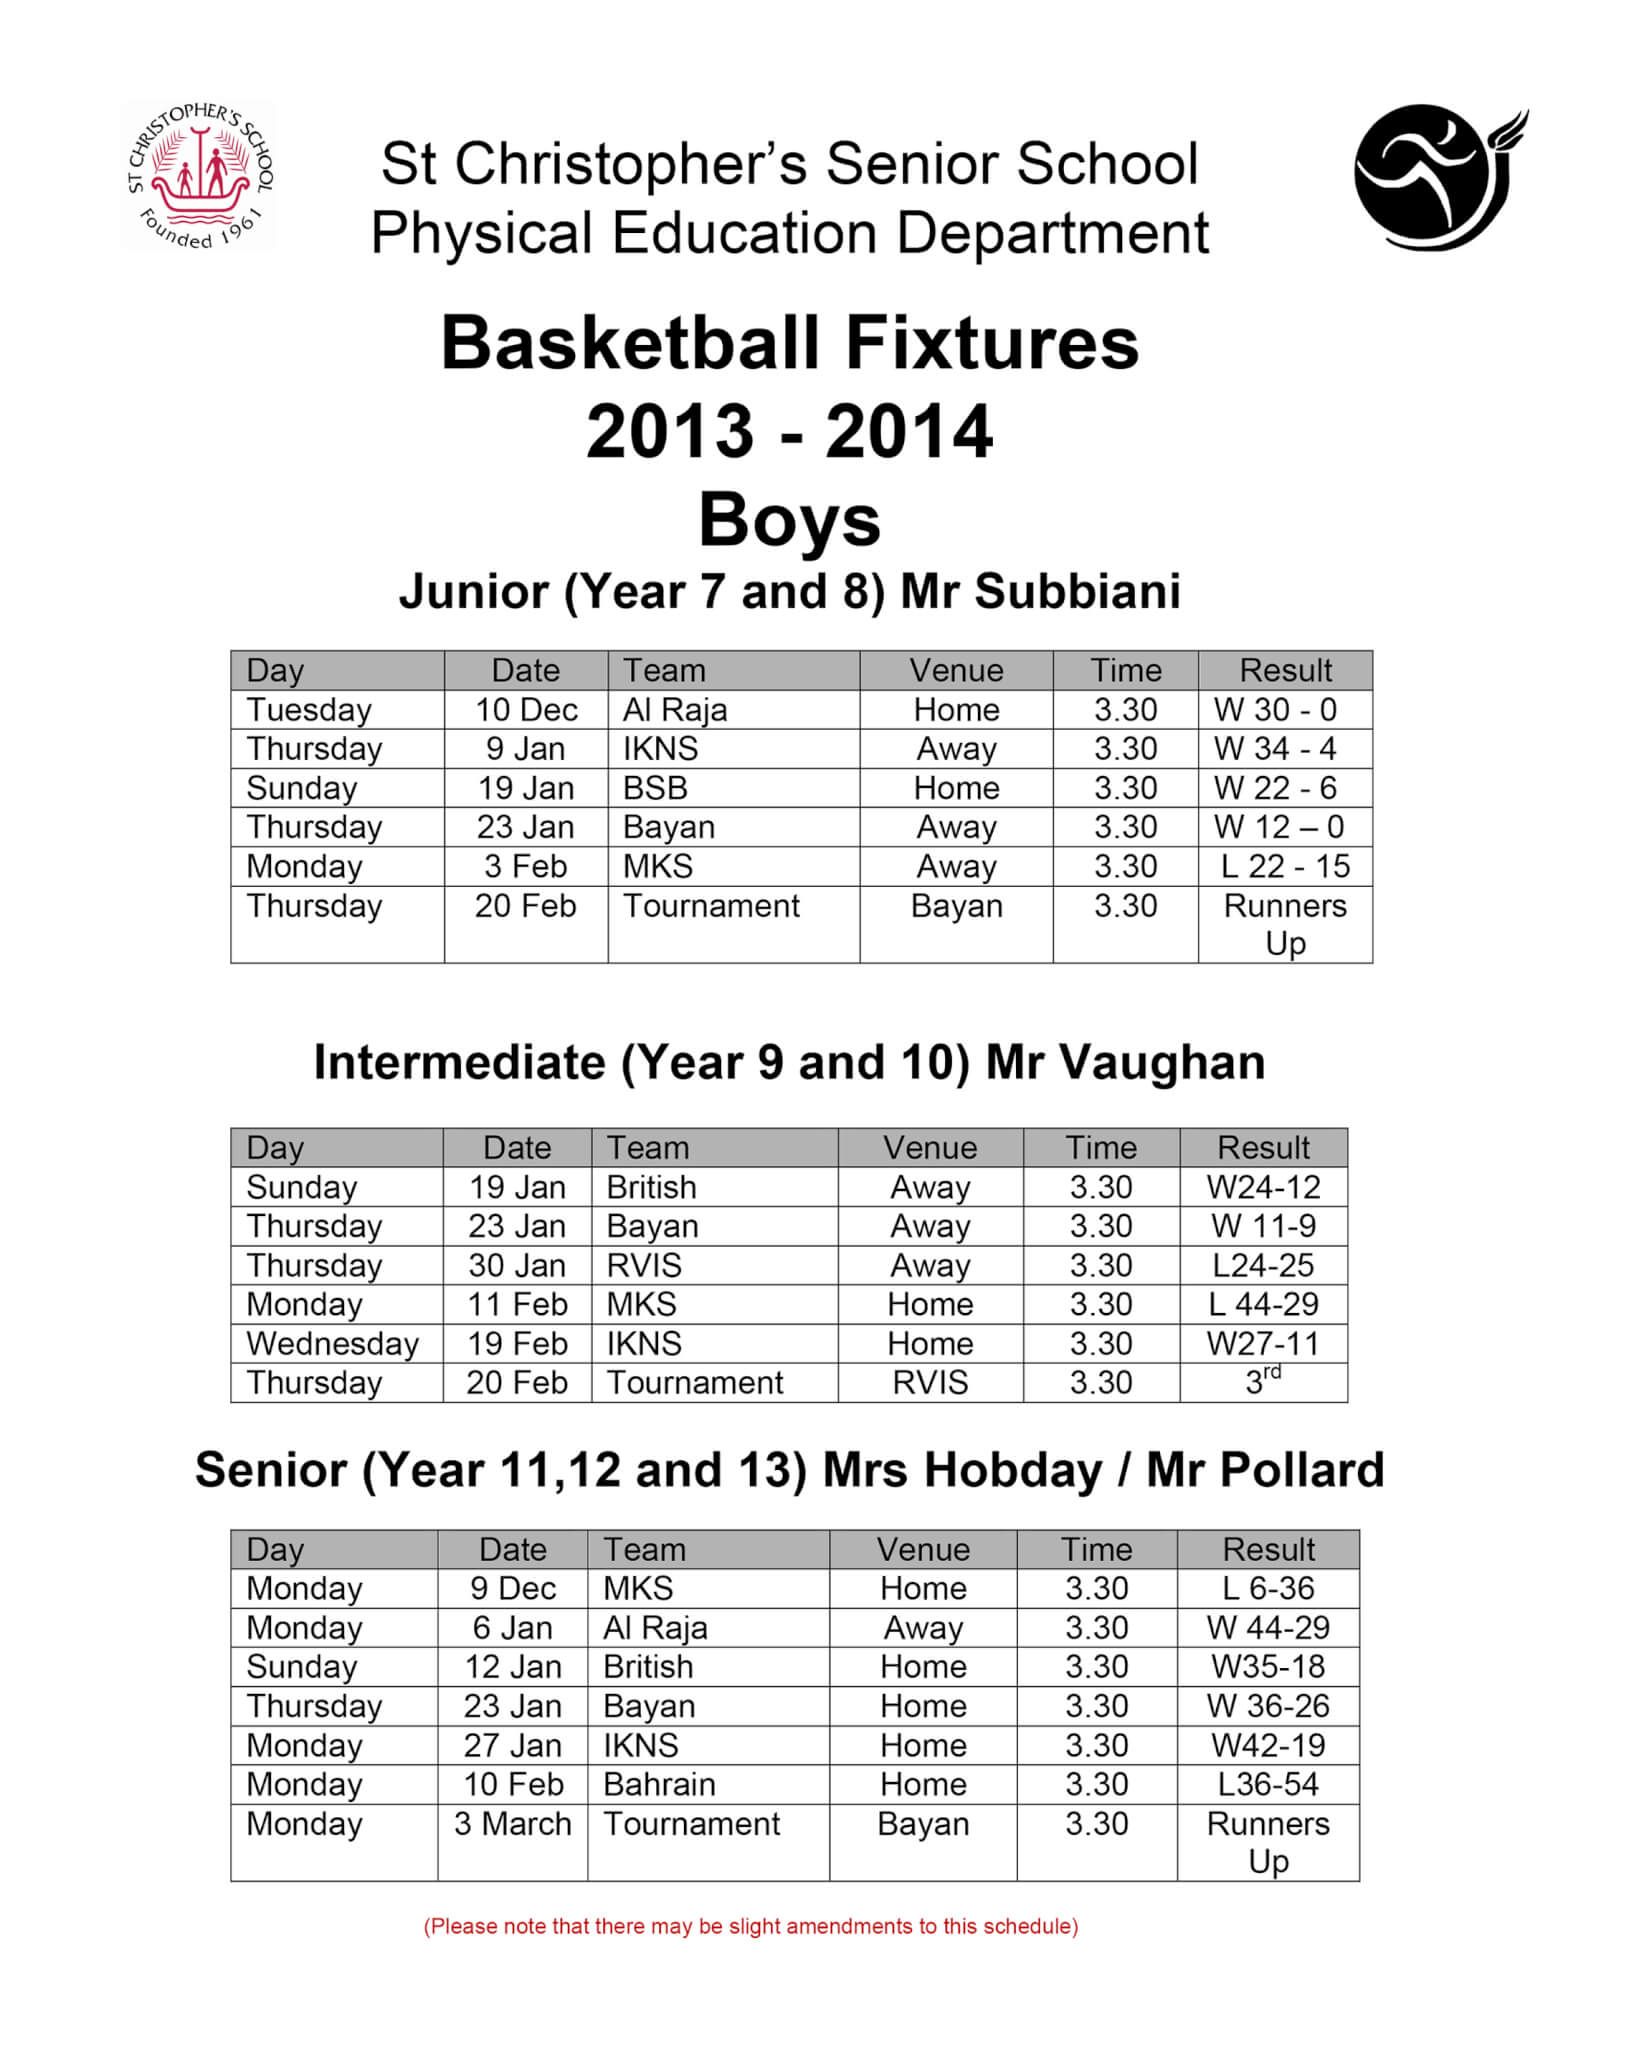 Microsoft Word - Basketball Boys Results News Fixt 2014.doc